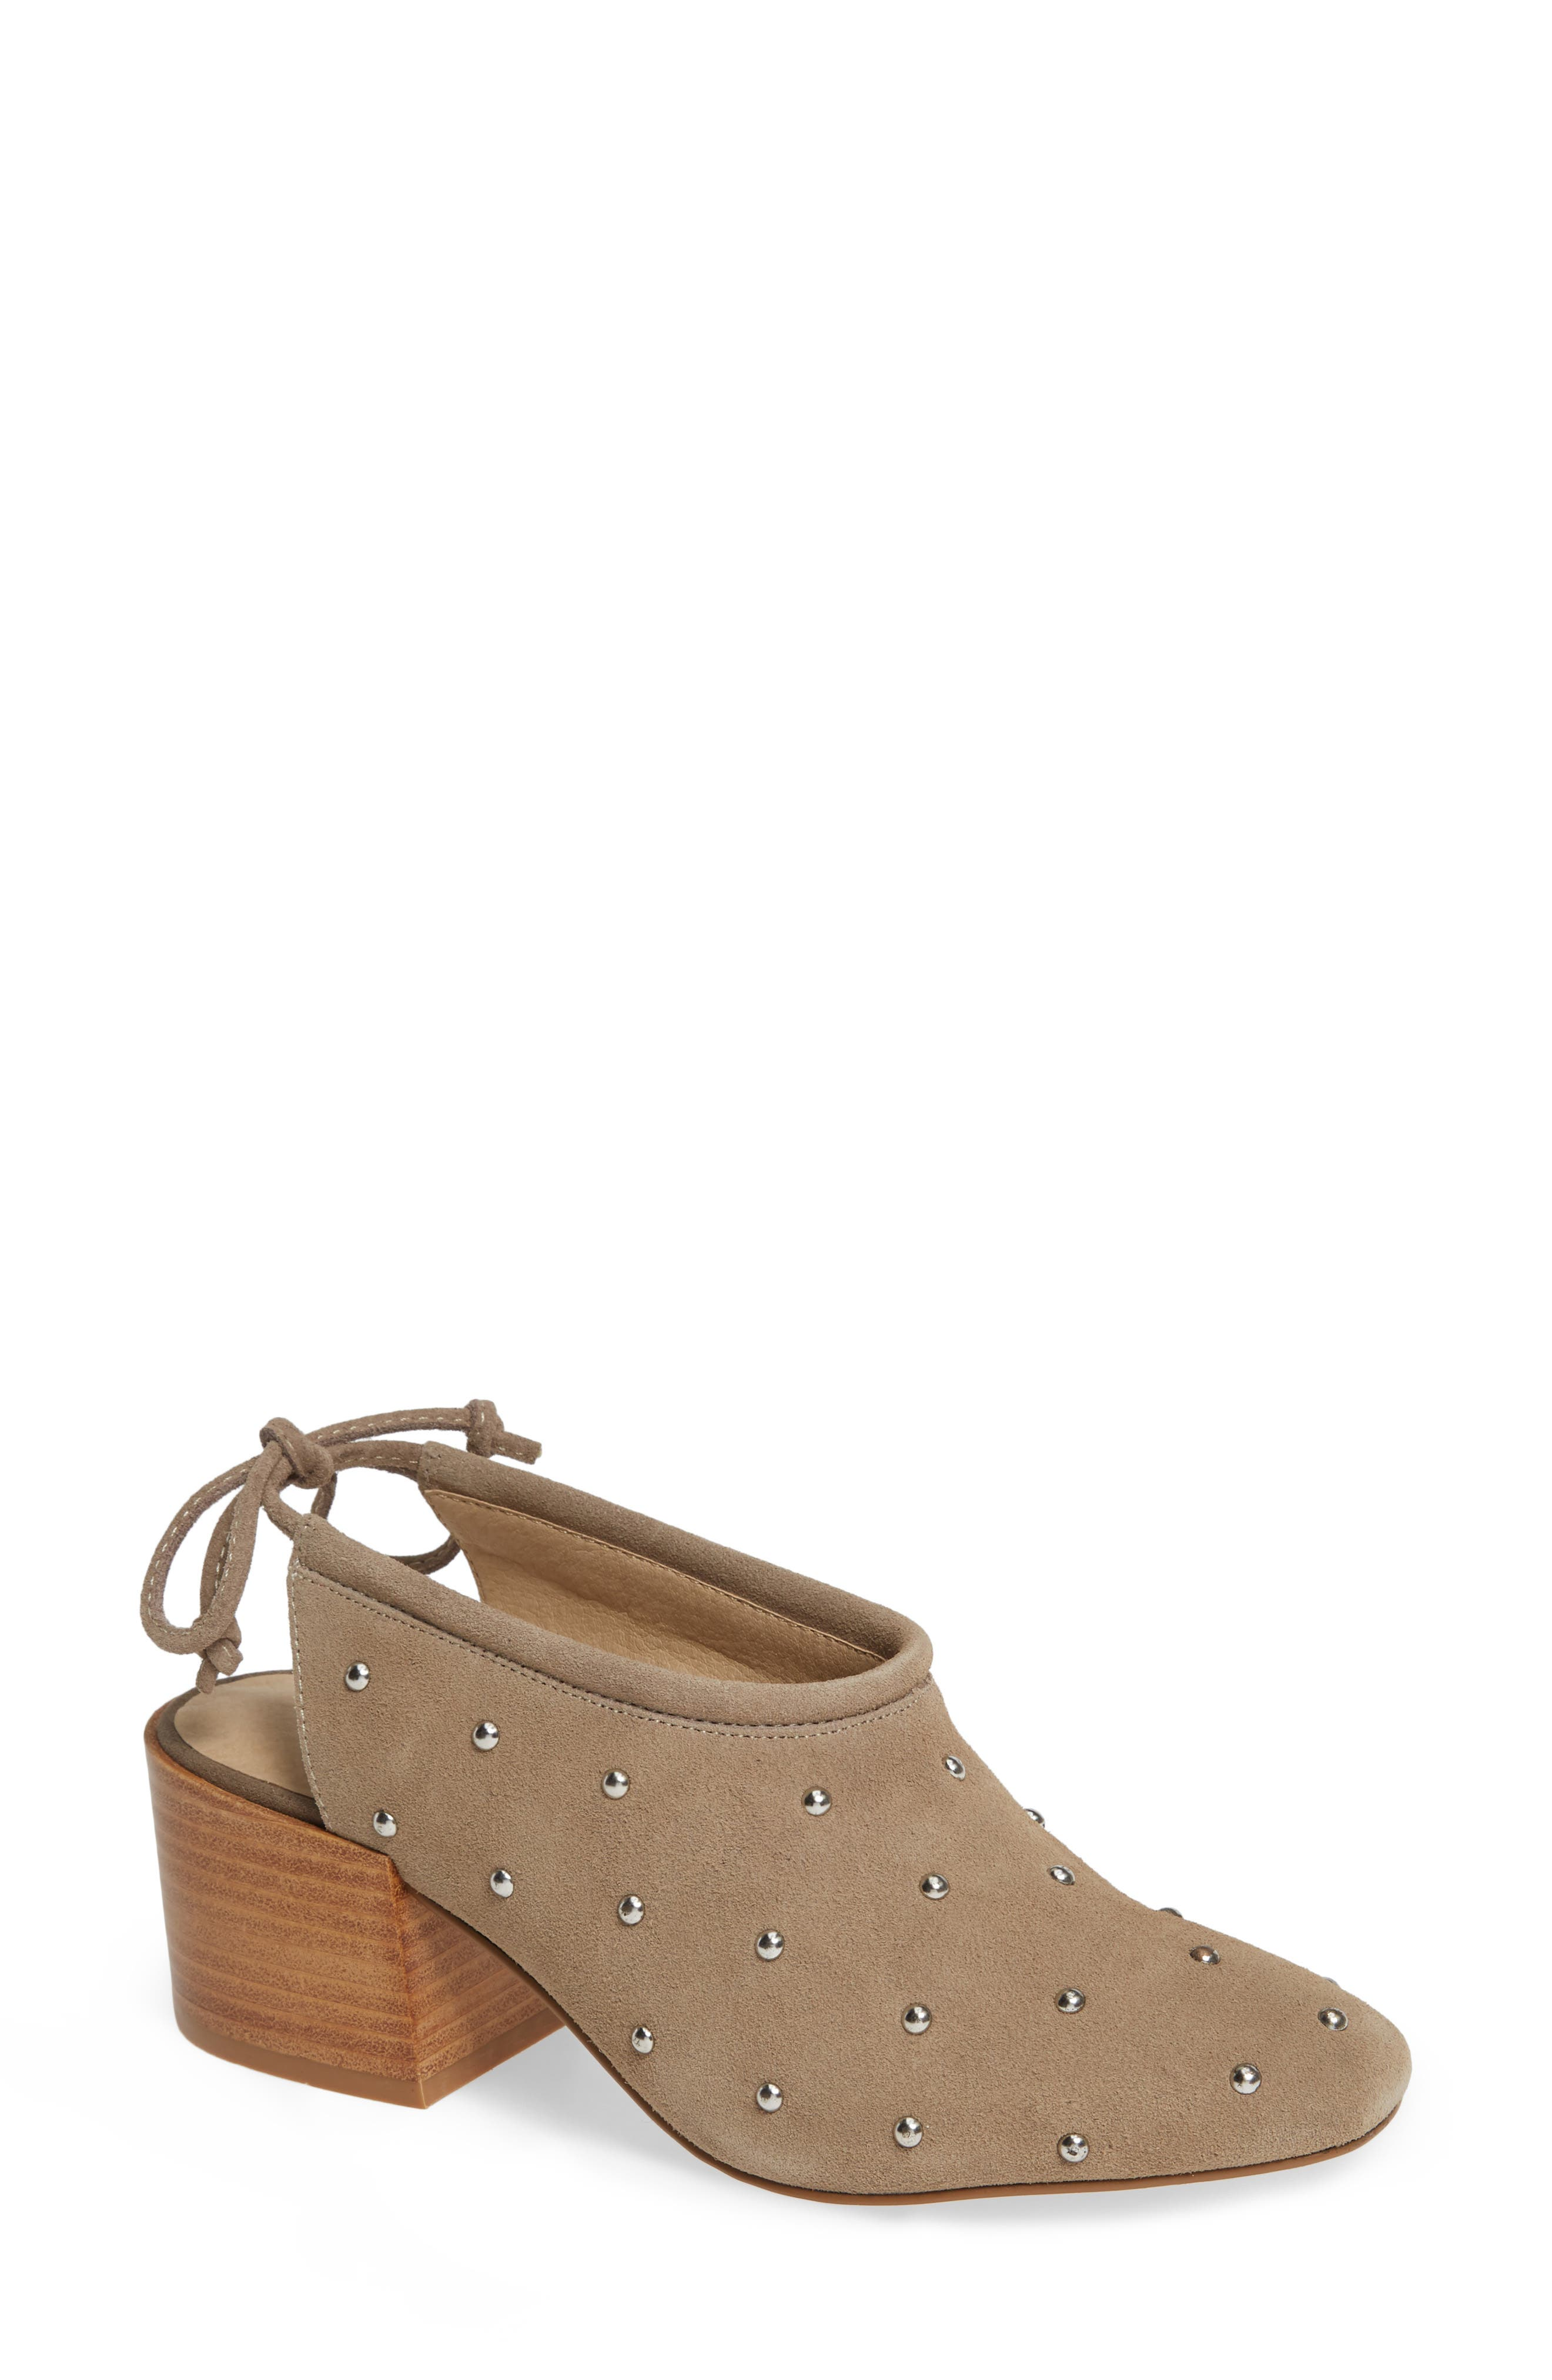 SBICCA,                             Janette Block Heel Pump,                             Main thumbnail 1, color,                             STONE LEATHER